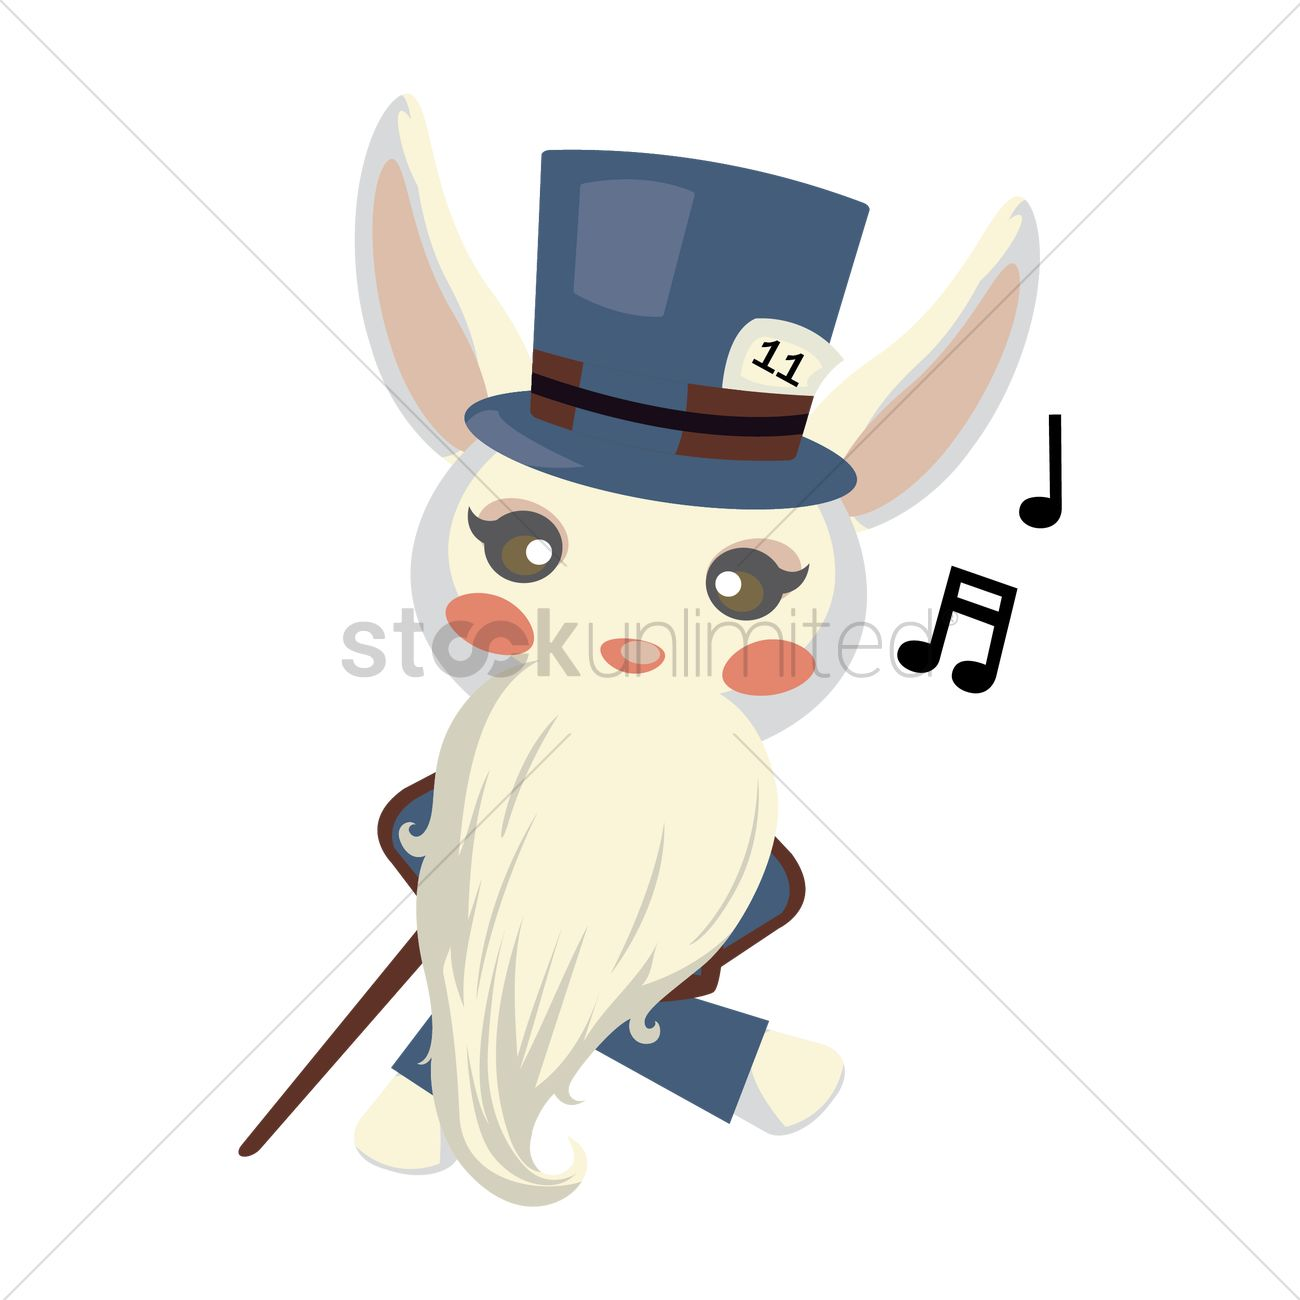 Free Bunny Dressed As A Old Man Vector Image 1279306 Stockunlimited